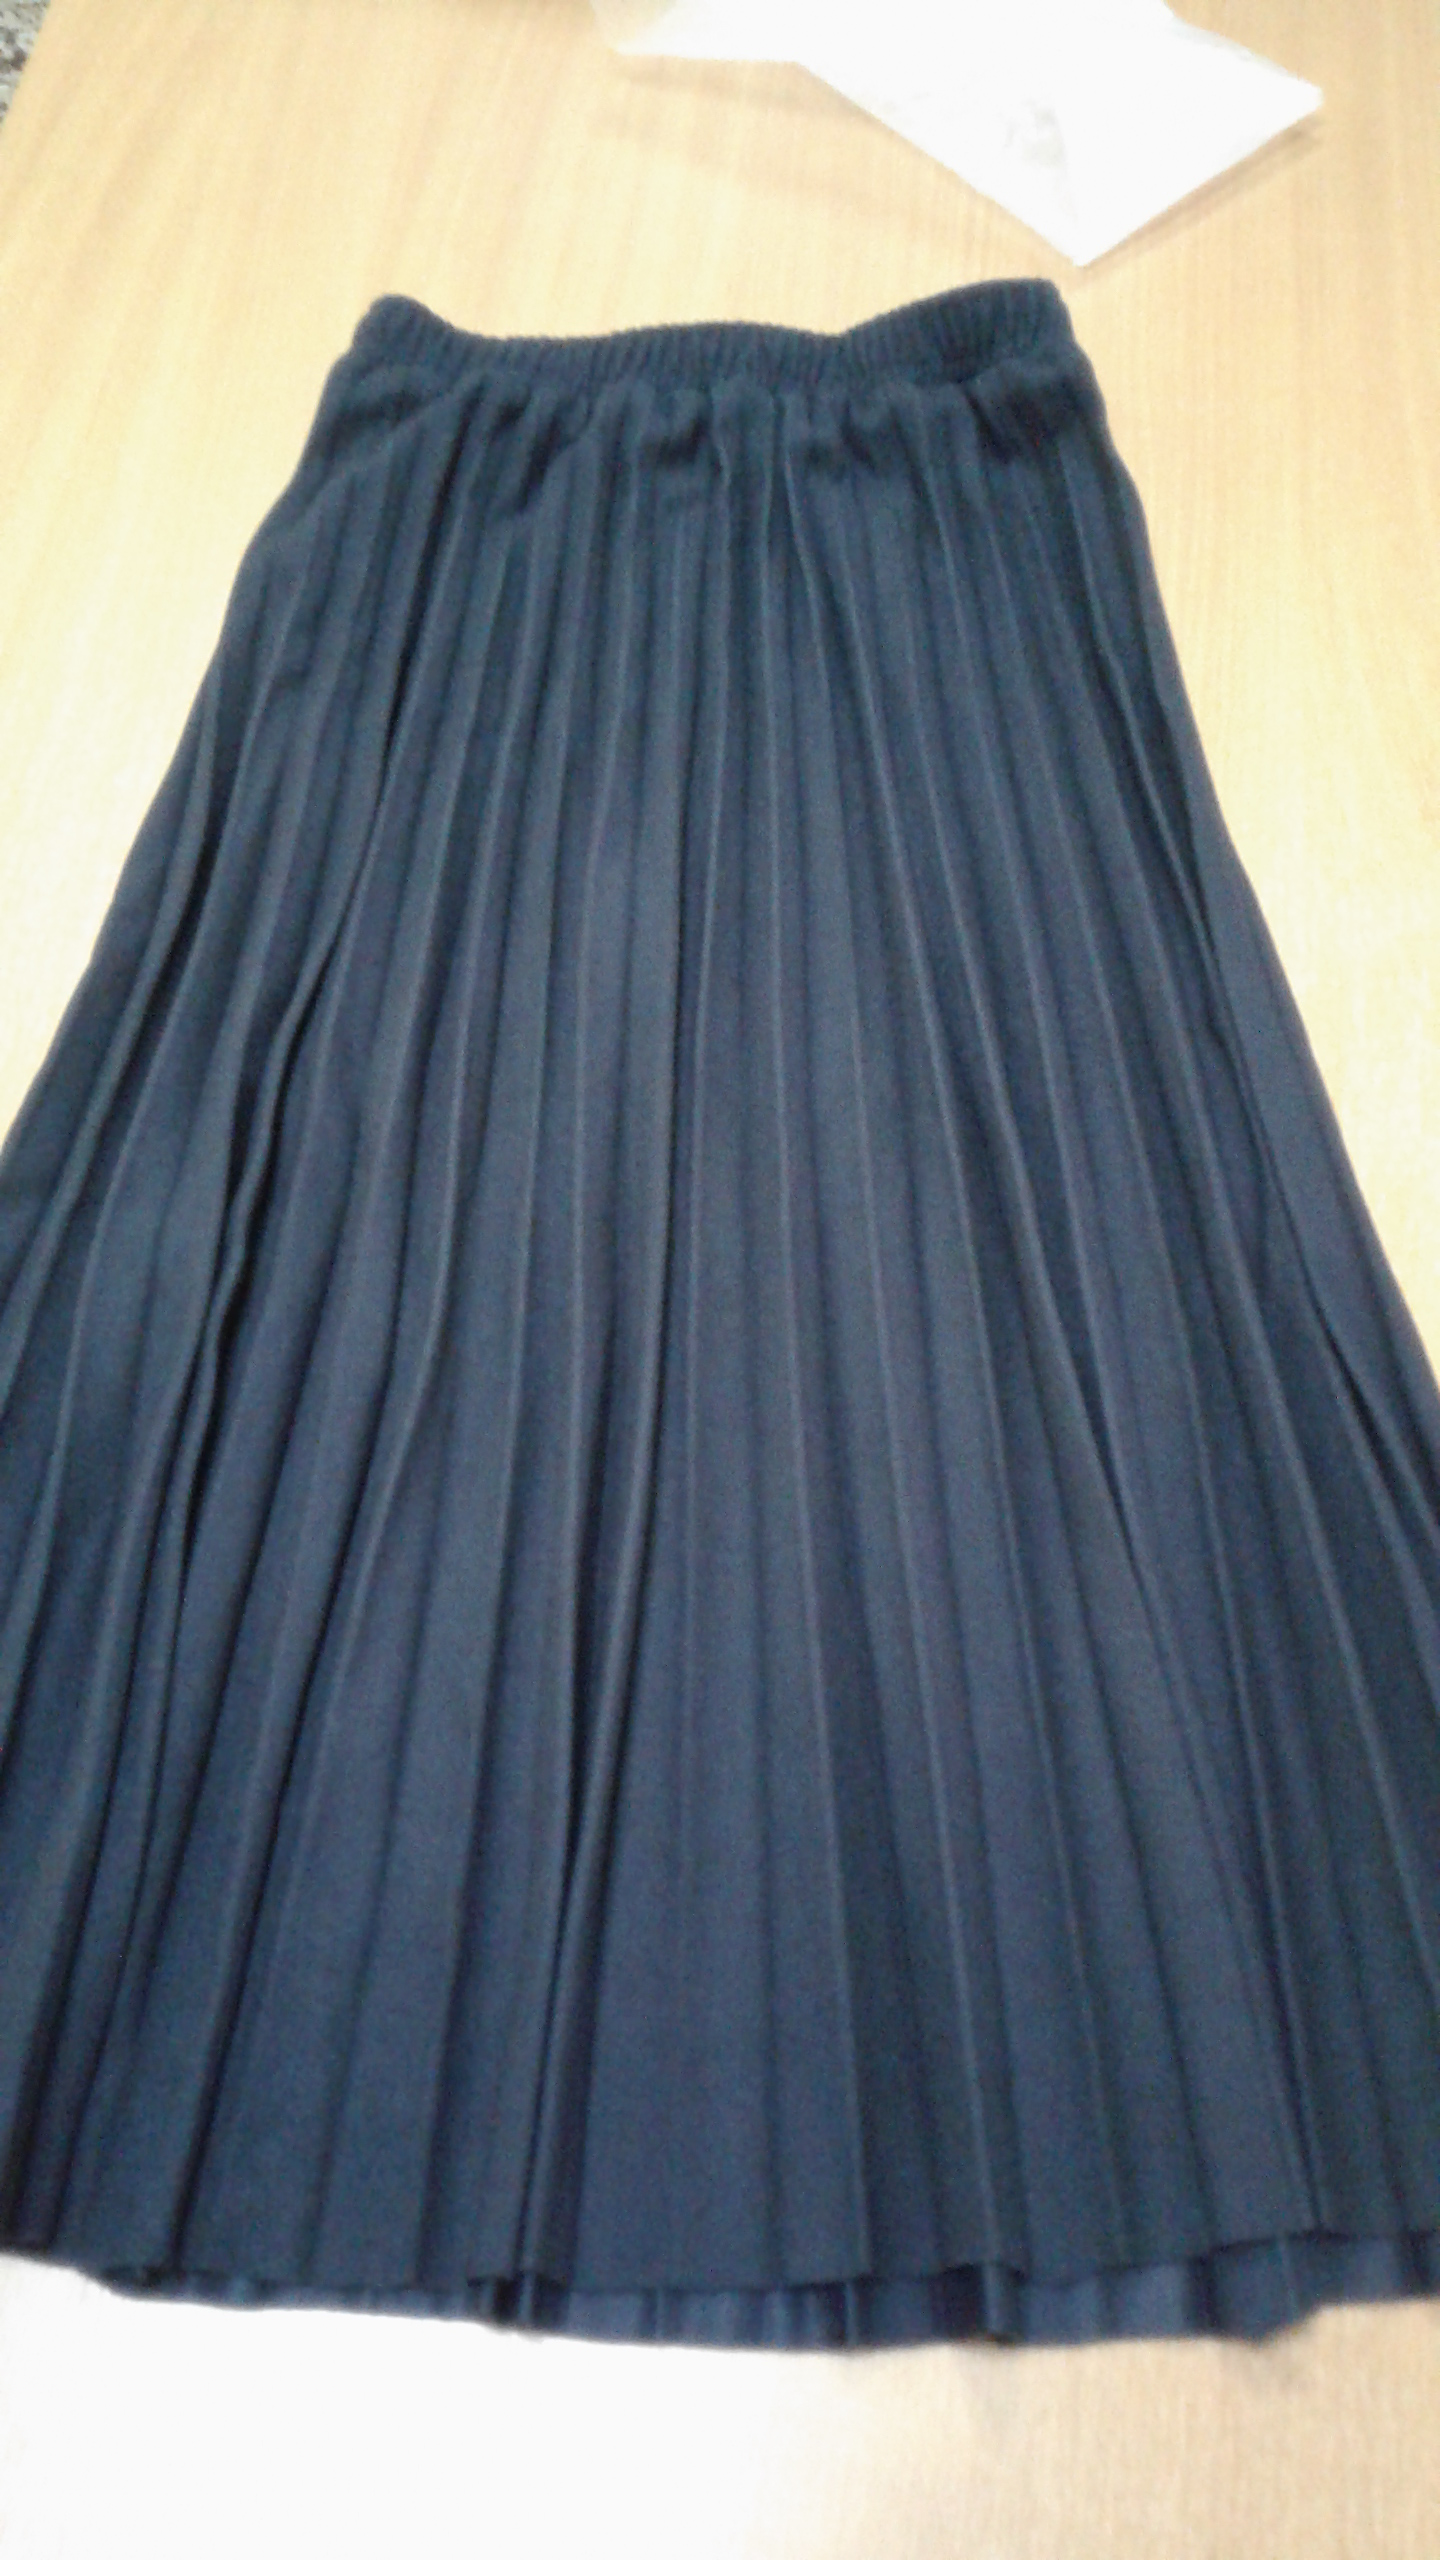 Winter Women Woolen Skirts High Waist A Line Long Pleated Skirt High Quality Women Skirt Faldas Jupe Femme Saia photo review